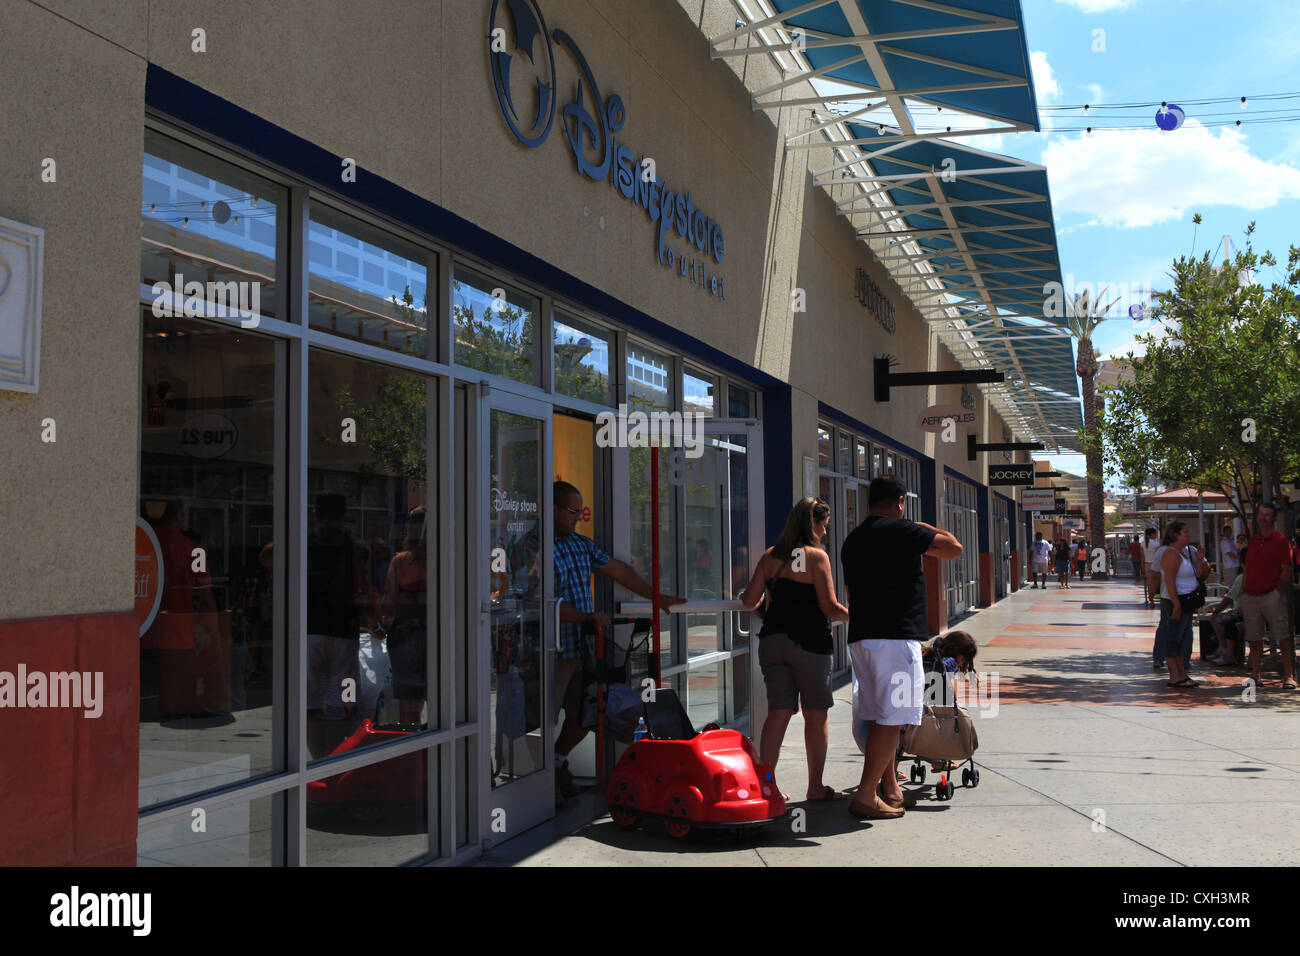 caecdd8dd44c39 Premium Outlet Mall Stock Photos   Premium Outlet Mall Stock Images ...